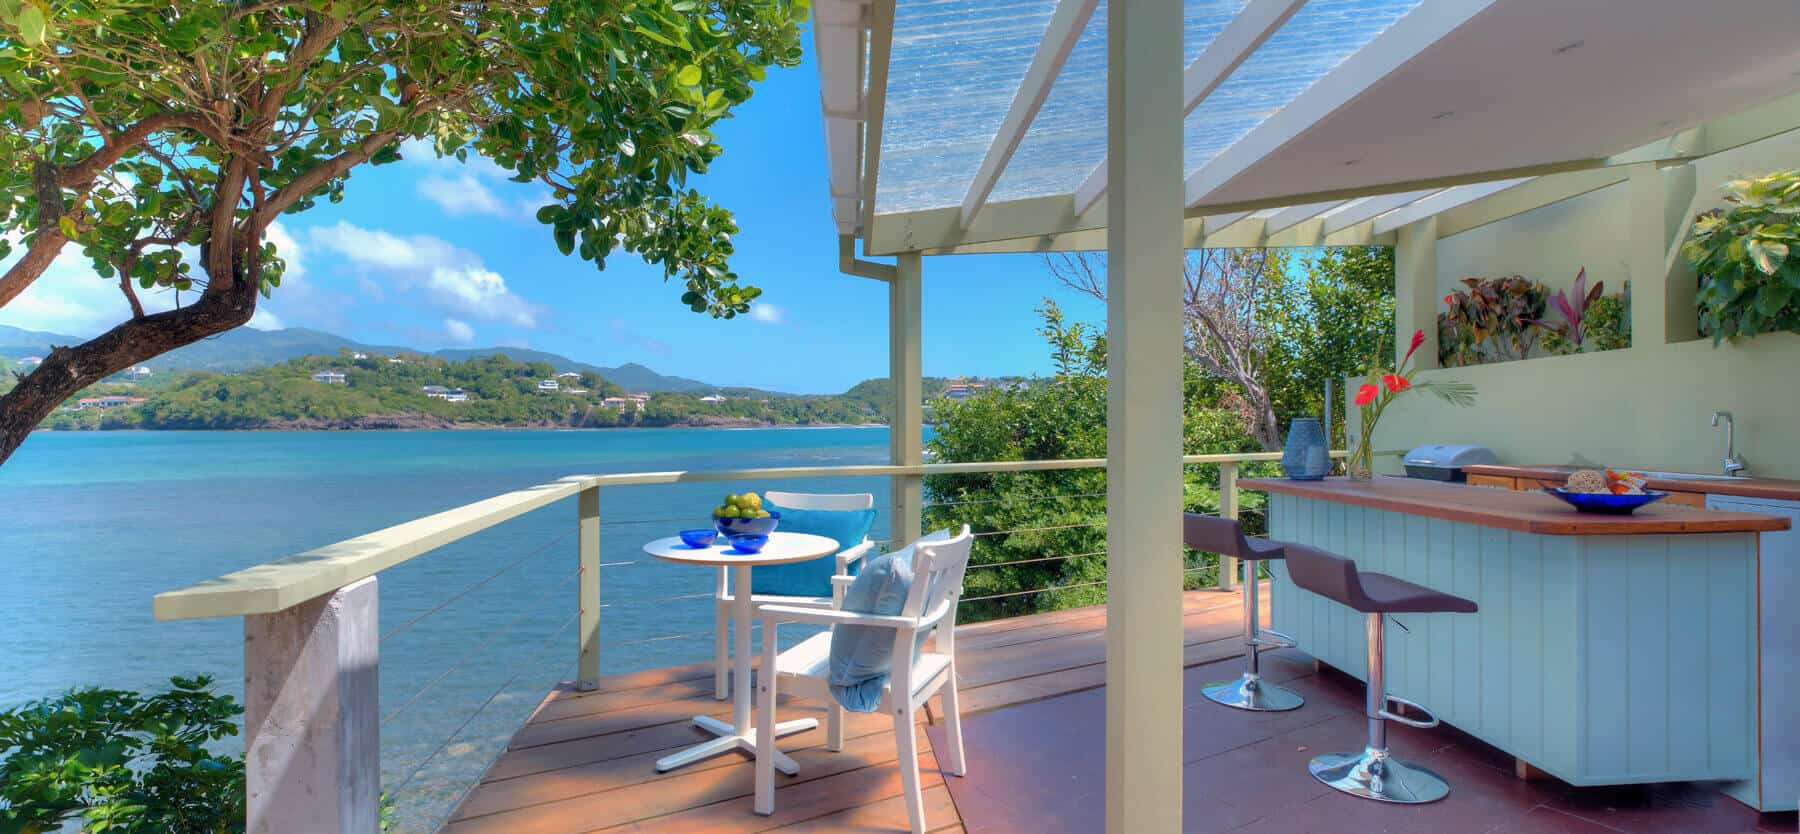 Private pool villa's view at 473 Grenada Boutique Resort